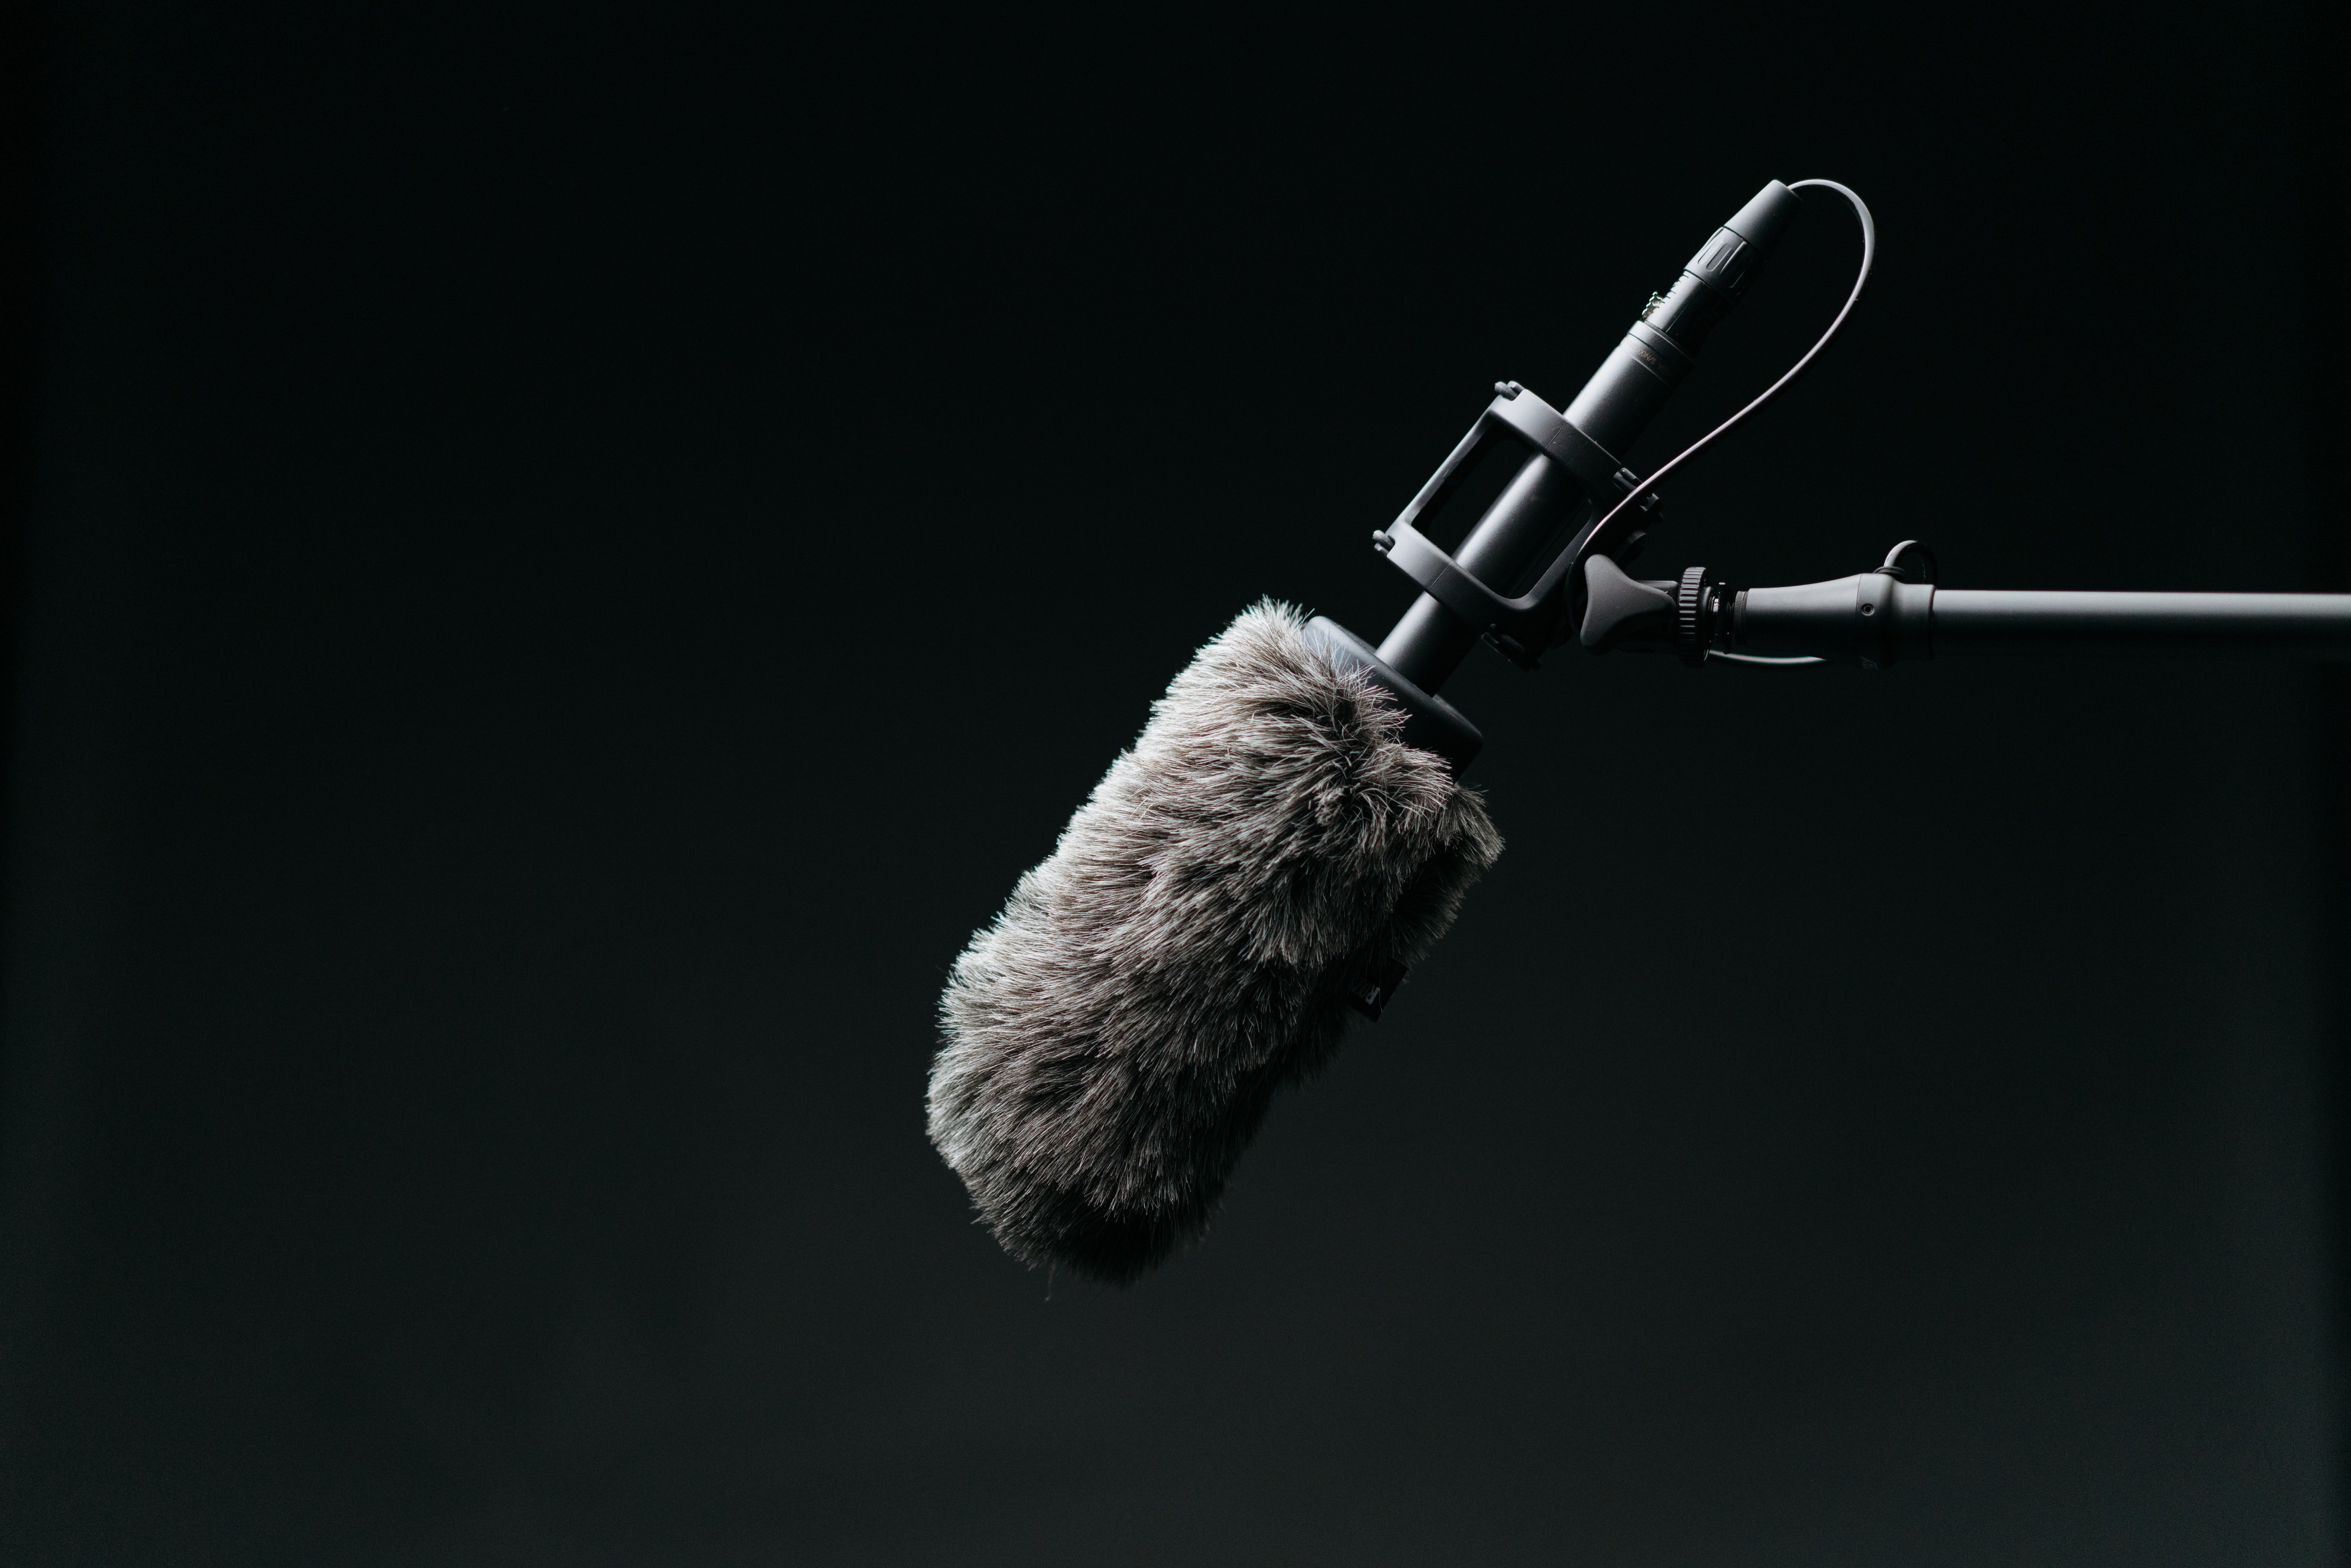 Example of a boom microphone used on set